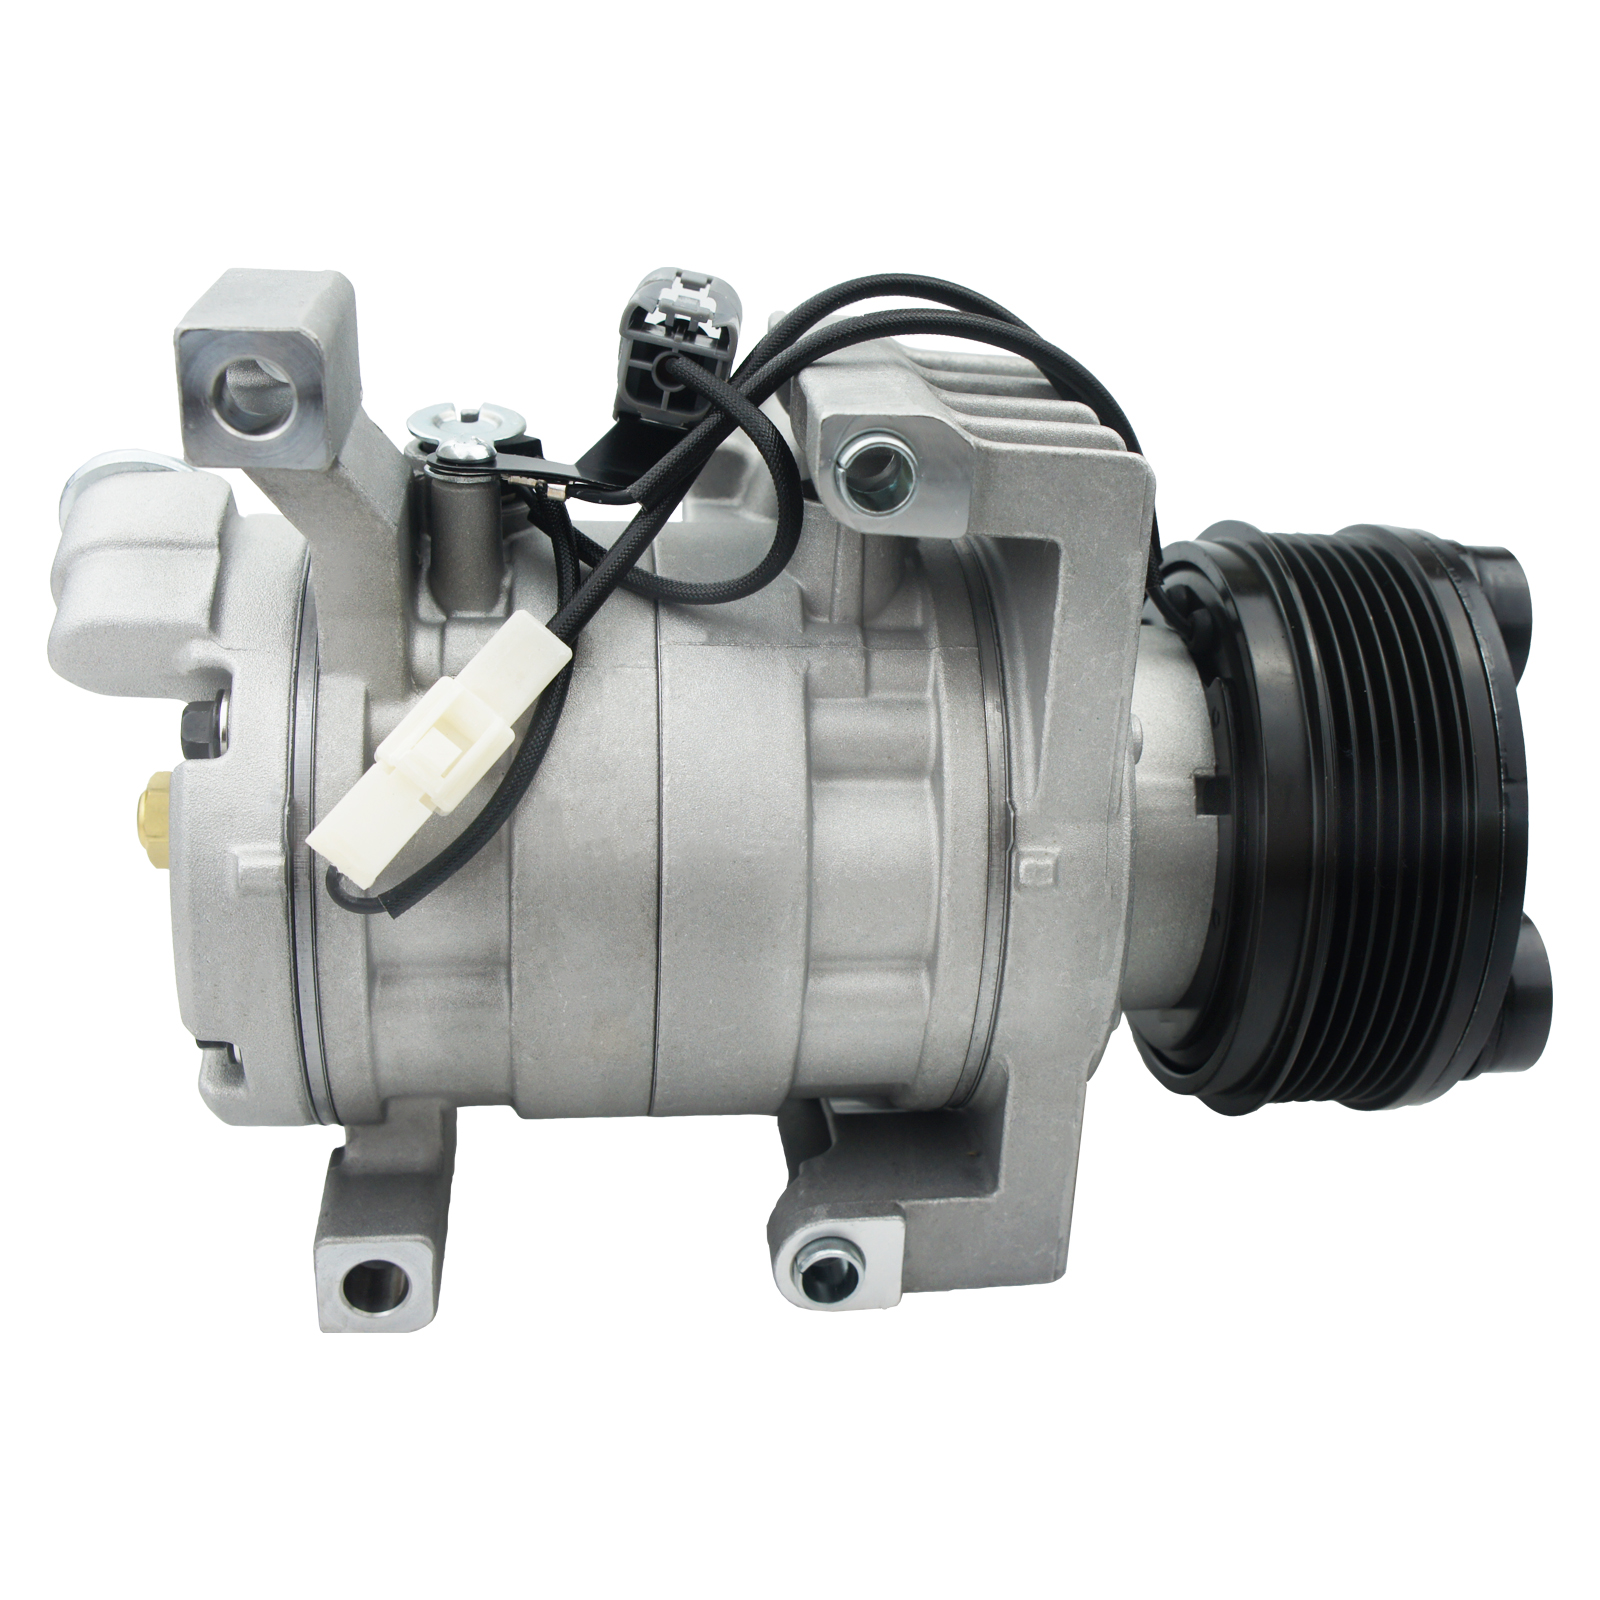 1pc AC A/C Compressor For 2007-2008 Mazda CX-7 2.3L L4